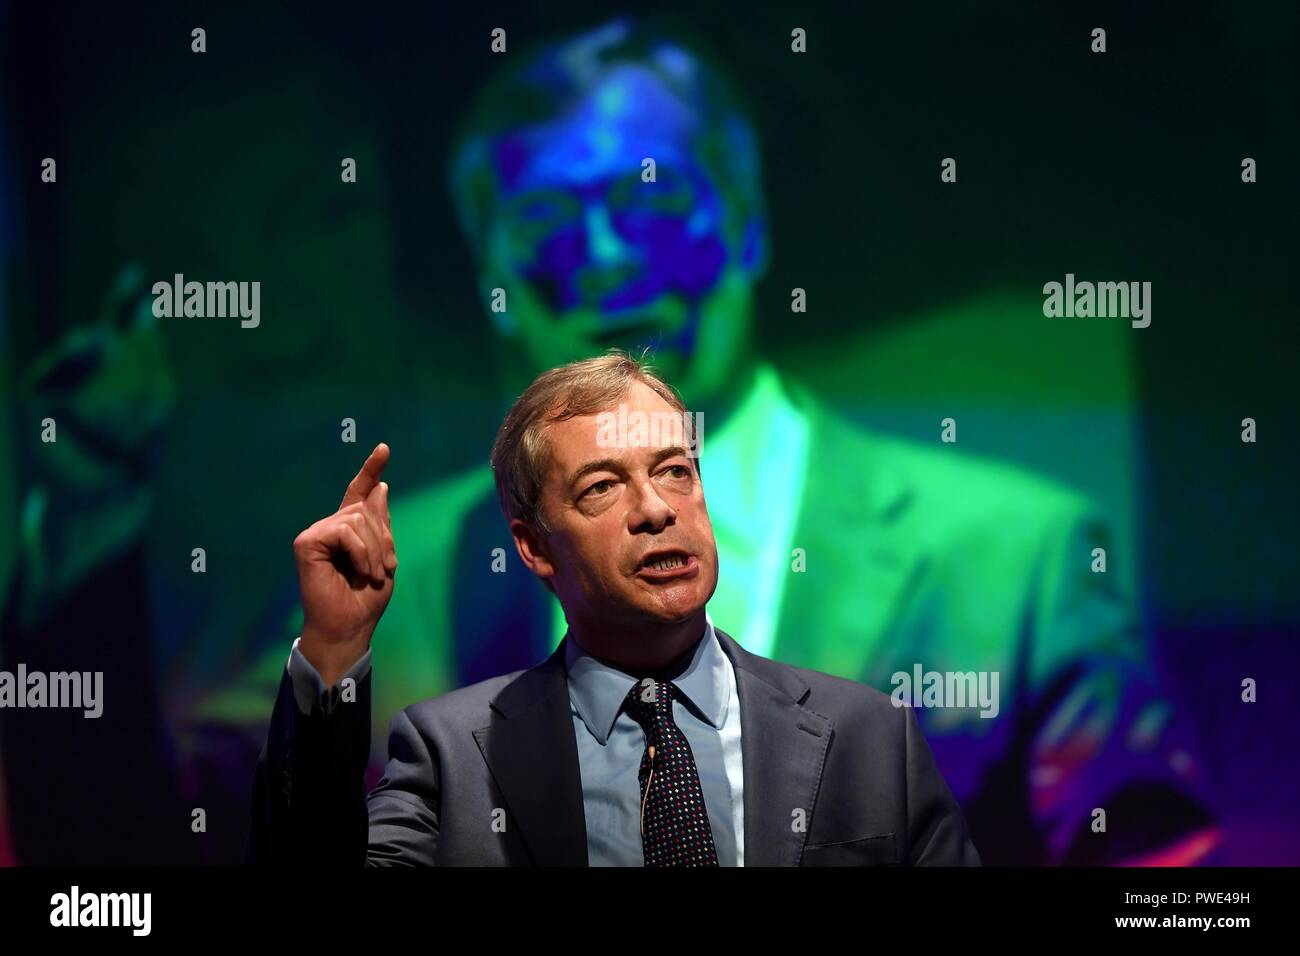 Bournemouth, UK. 15th Oct 2018. Nigel Farage MEP gives his speech at the Leave Means Leave rally to save Brexit at Bournemouth International Centre, (BIC), Dorset, UK Credit: Finnbarr Webster/Alamy Live News - Stock Image